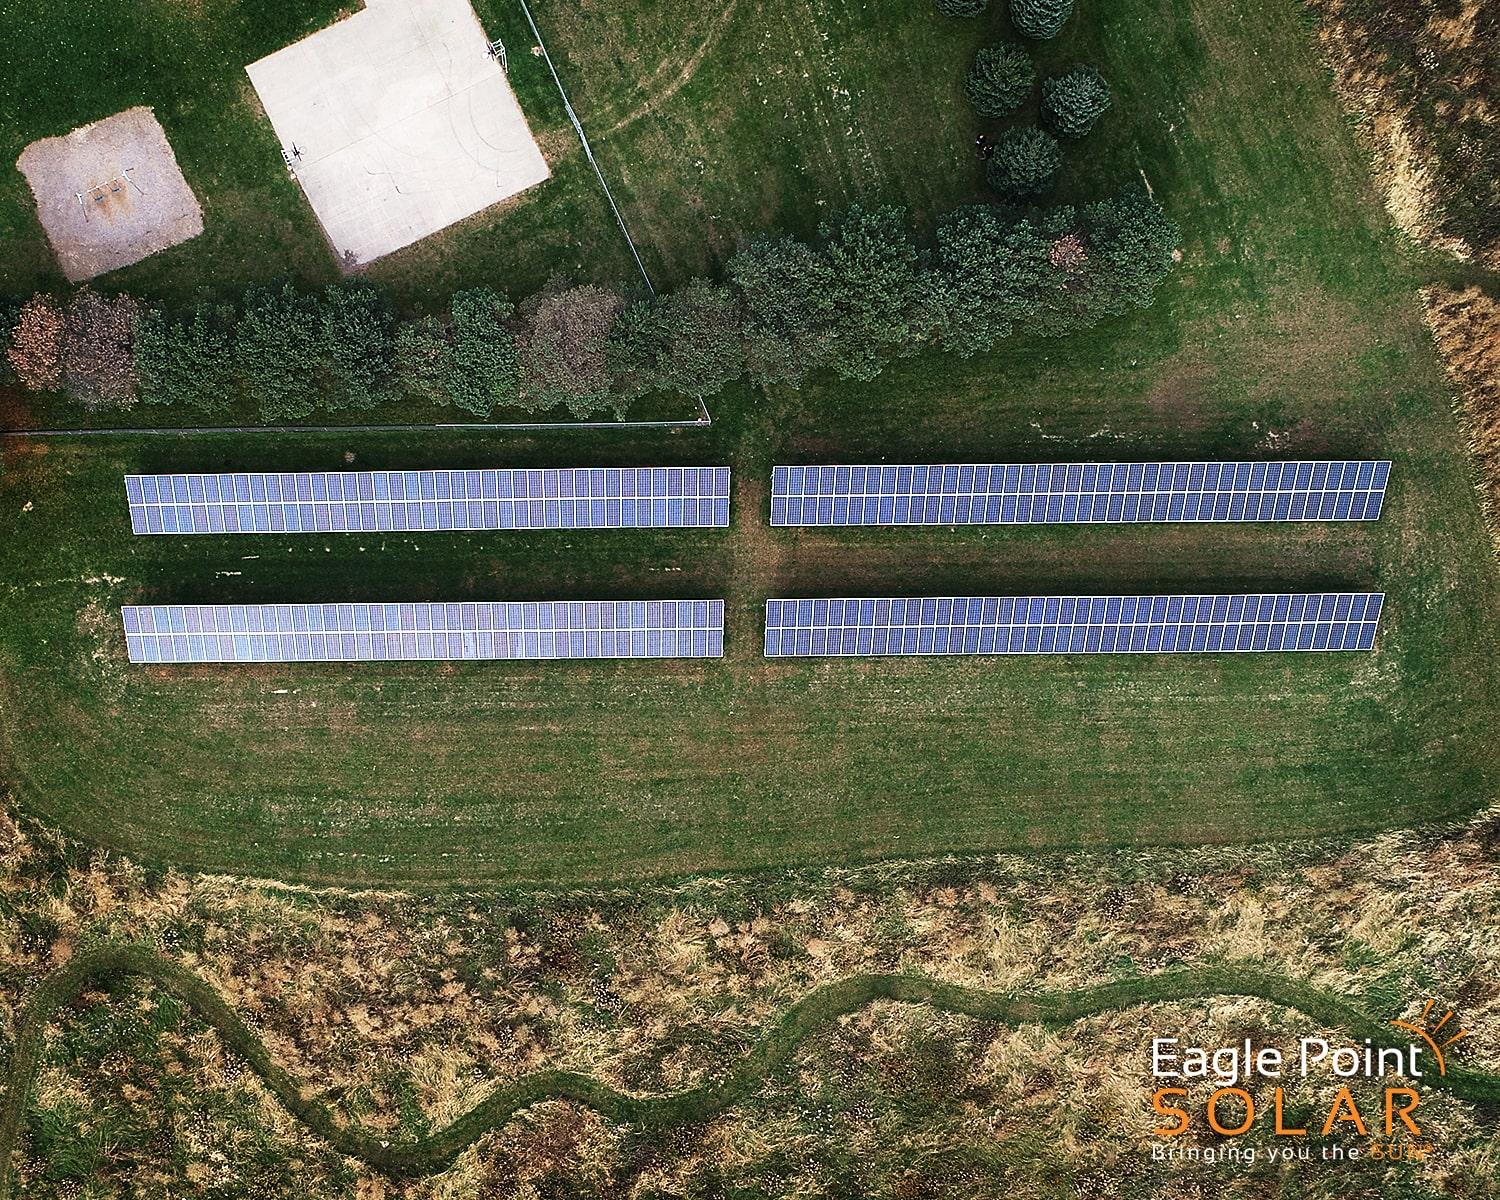 Overhead photo of a academic ground mounted solar array